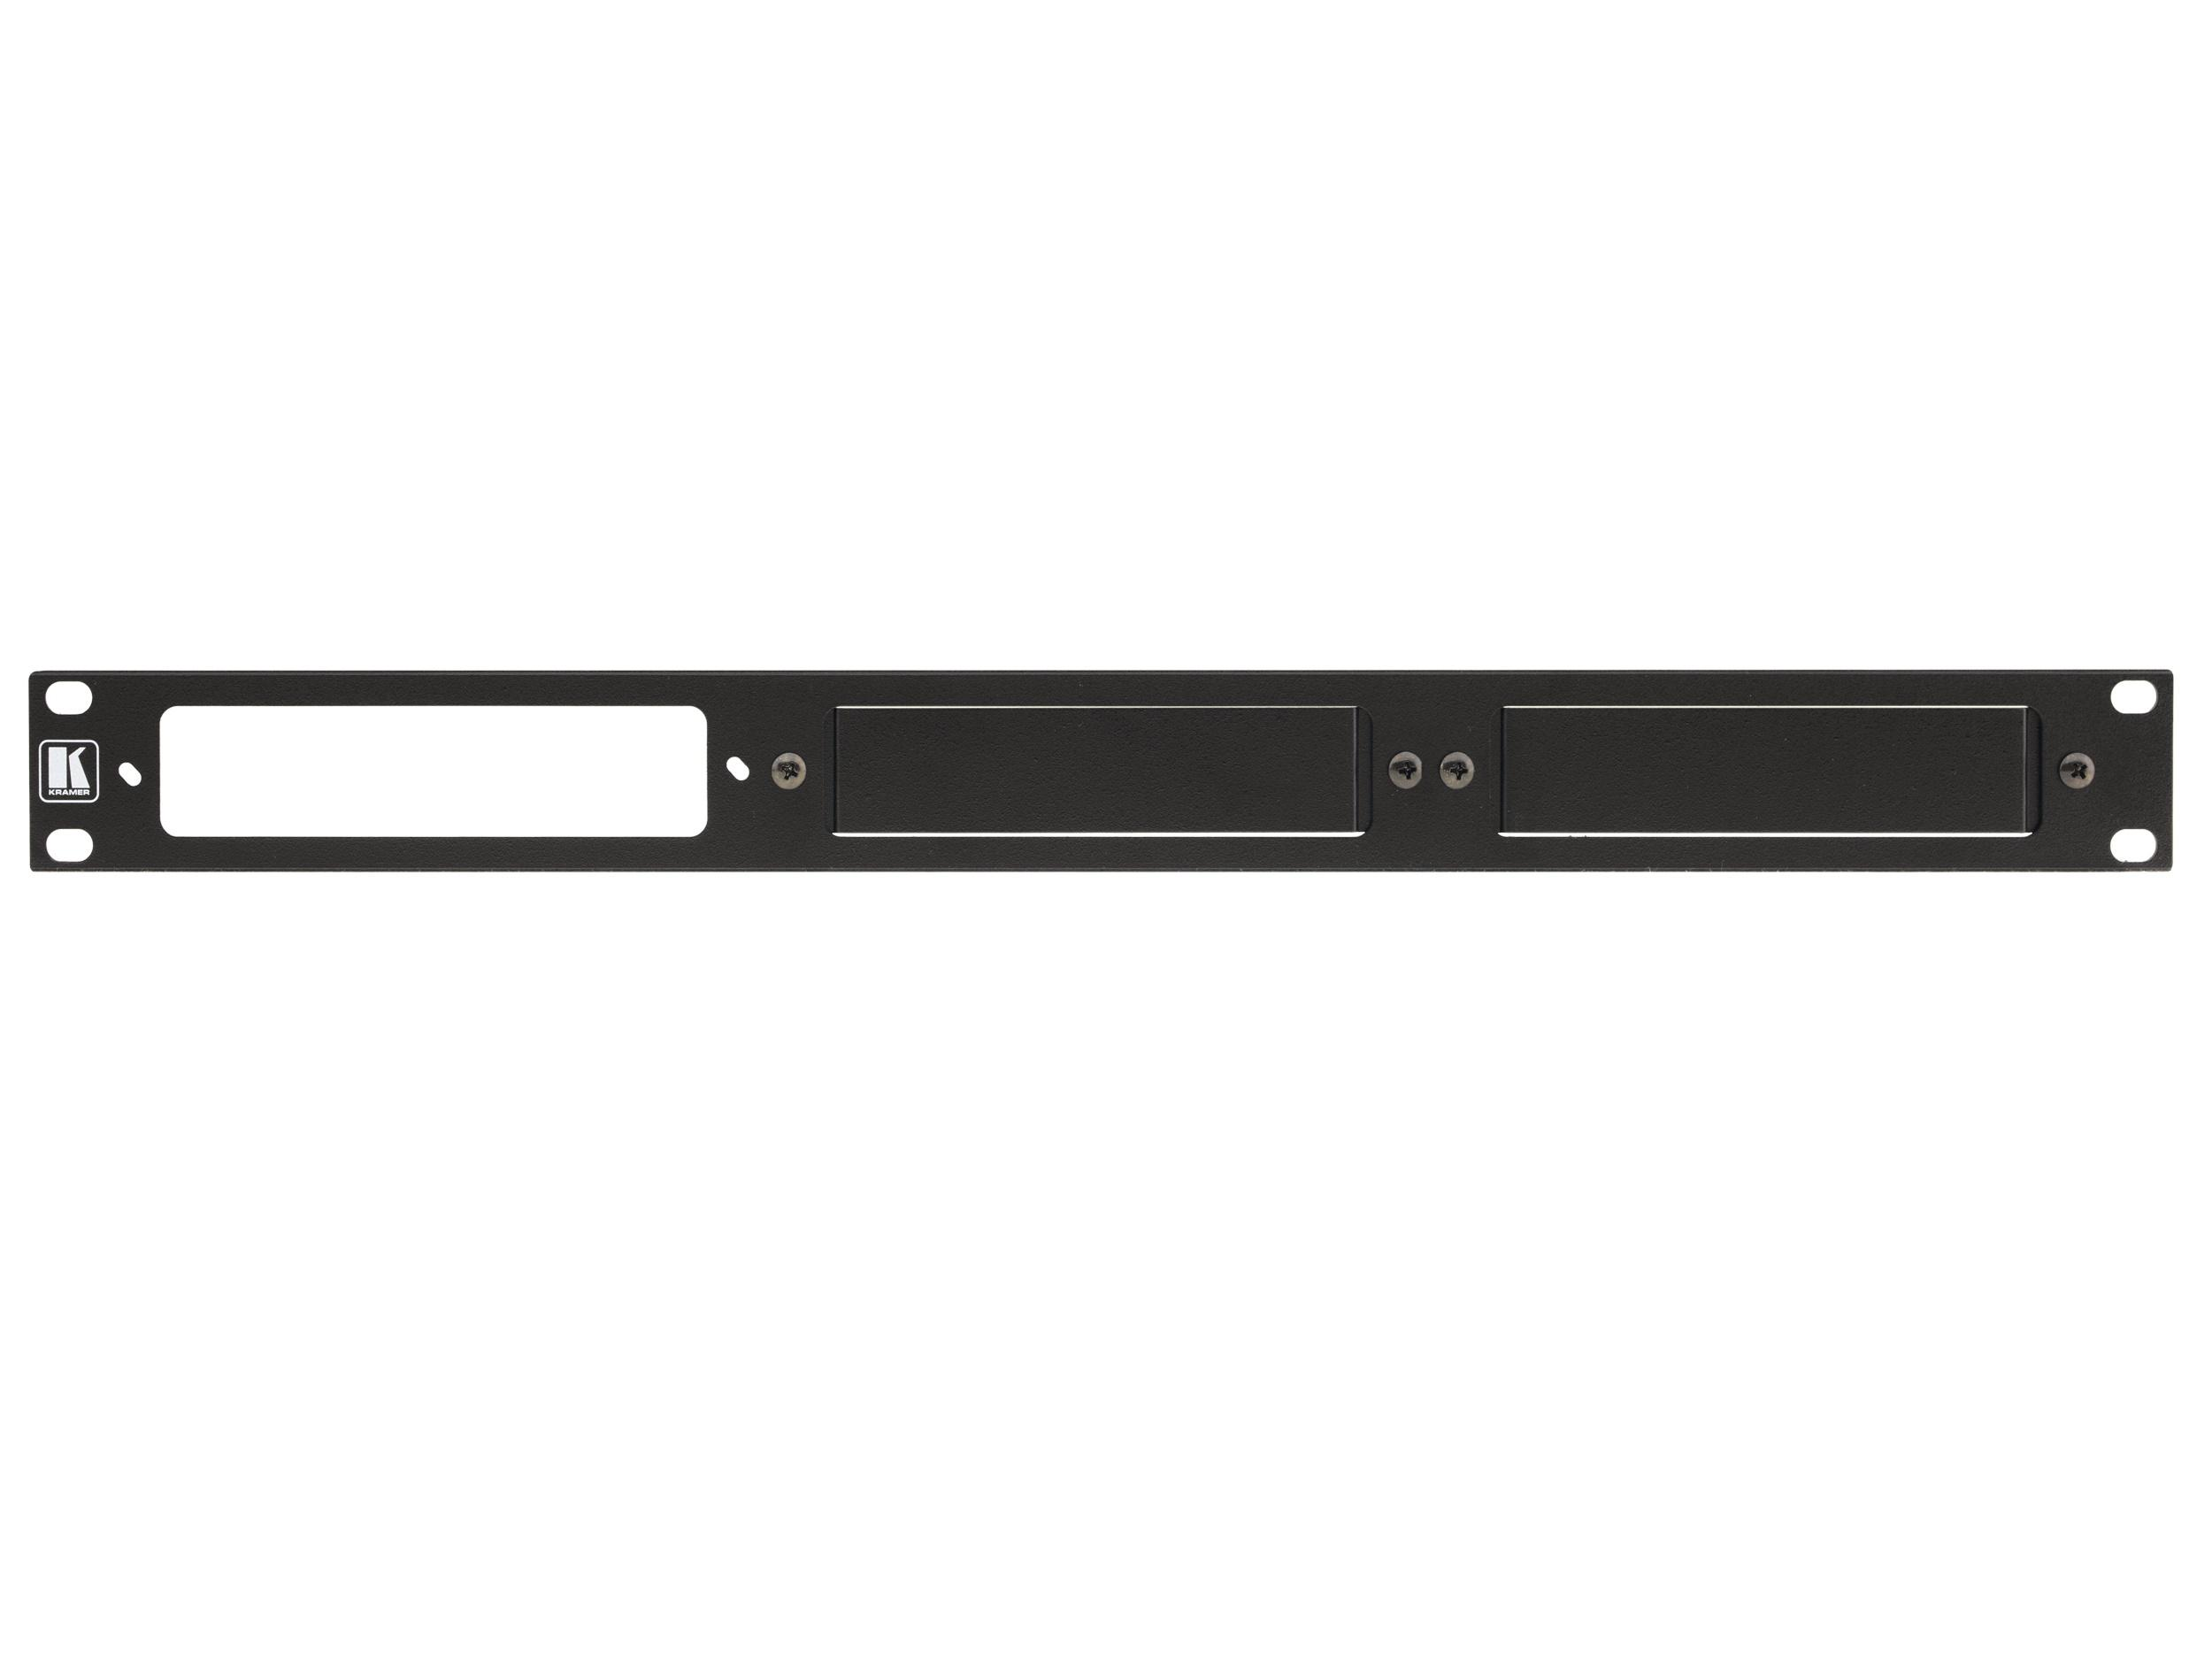 Kramer RK-3T-B 19-Inch Rack Adapter for TOOLS